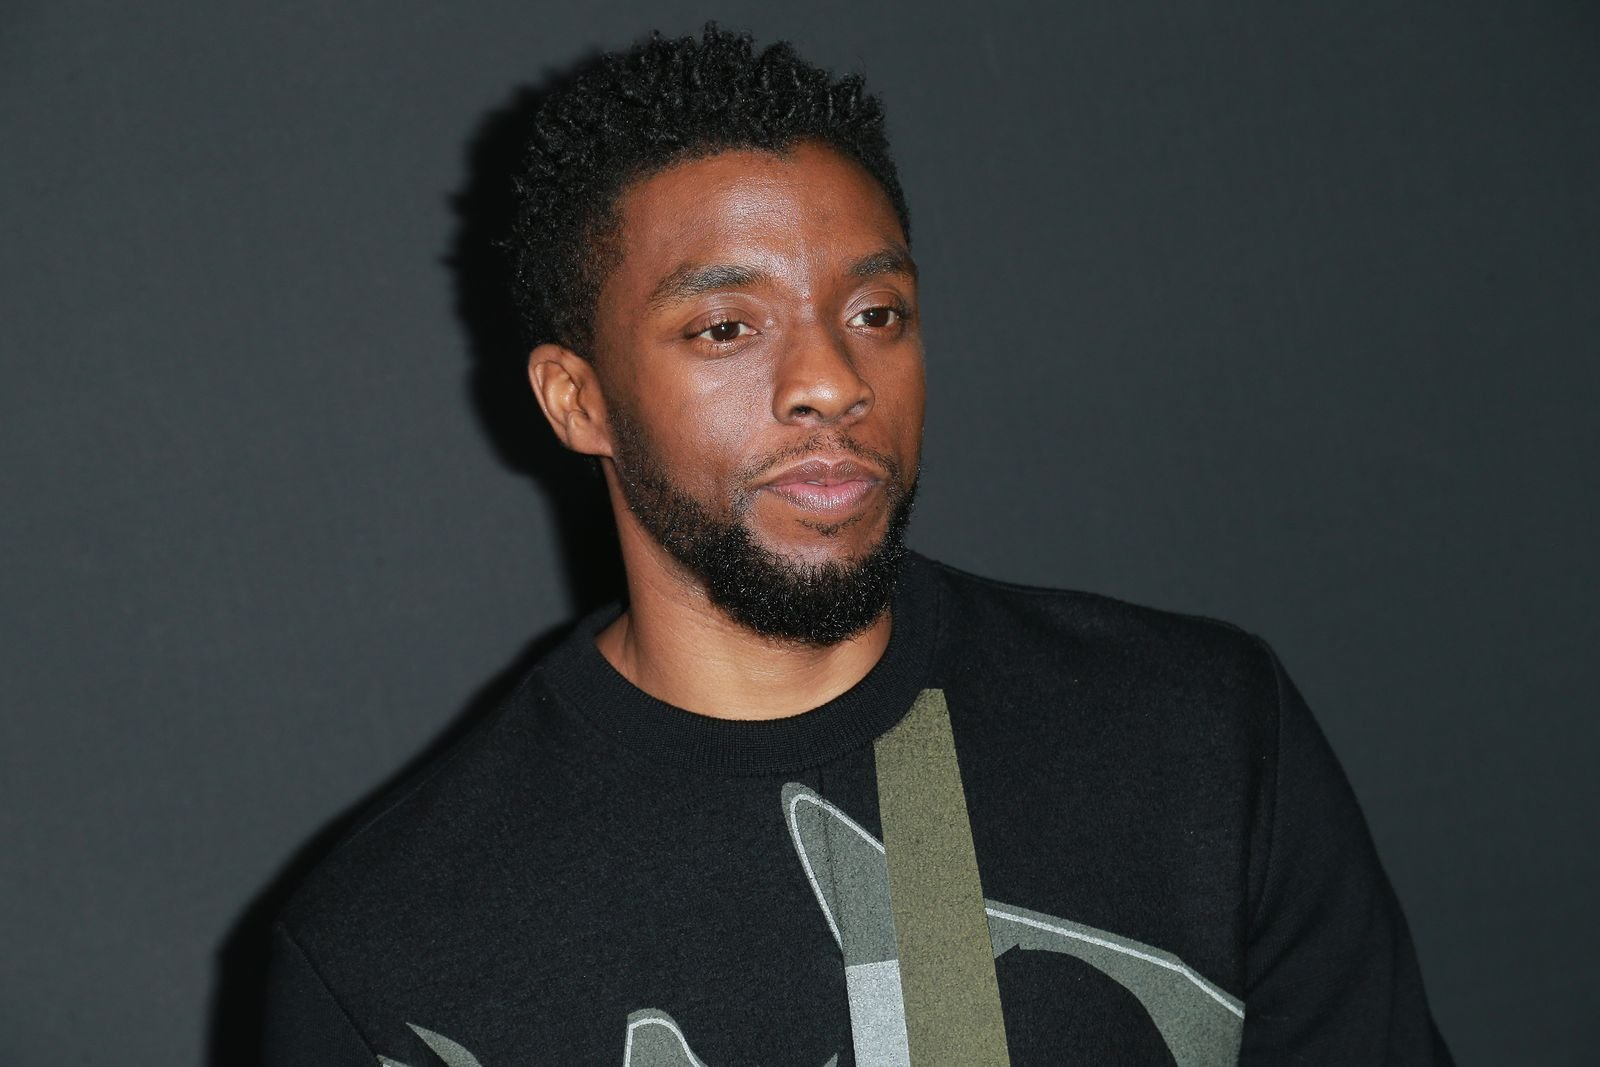 Chadwick Boseman attends GQ Celebrates The 2018 All-Stars In Los Angeles at Nomad Hotel Los Angeles on February 17, 2018 in Los Angeles, California. (Photo by Leon Bennett/Getty Images)